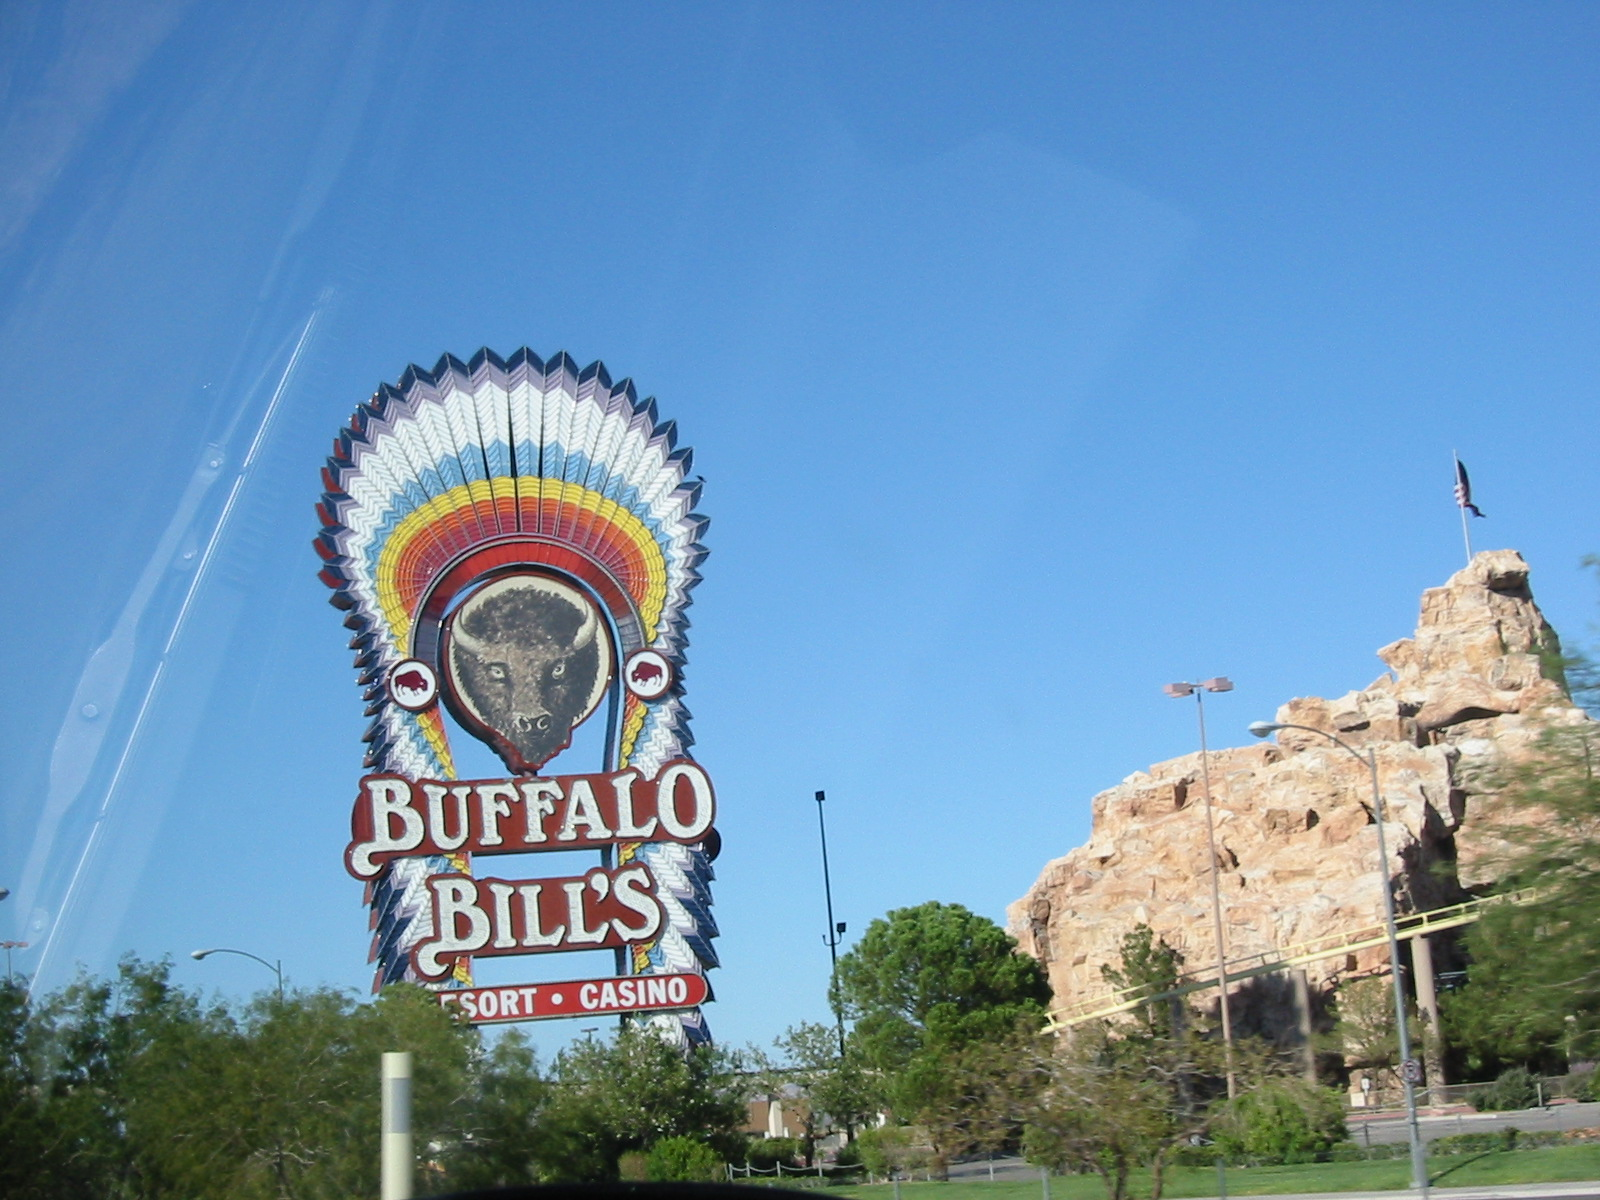 Buffalo bills resort casino royal hotel casino mandelieu poker